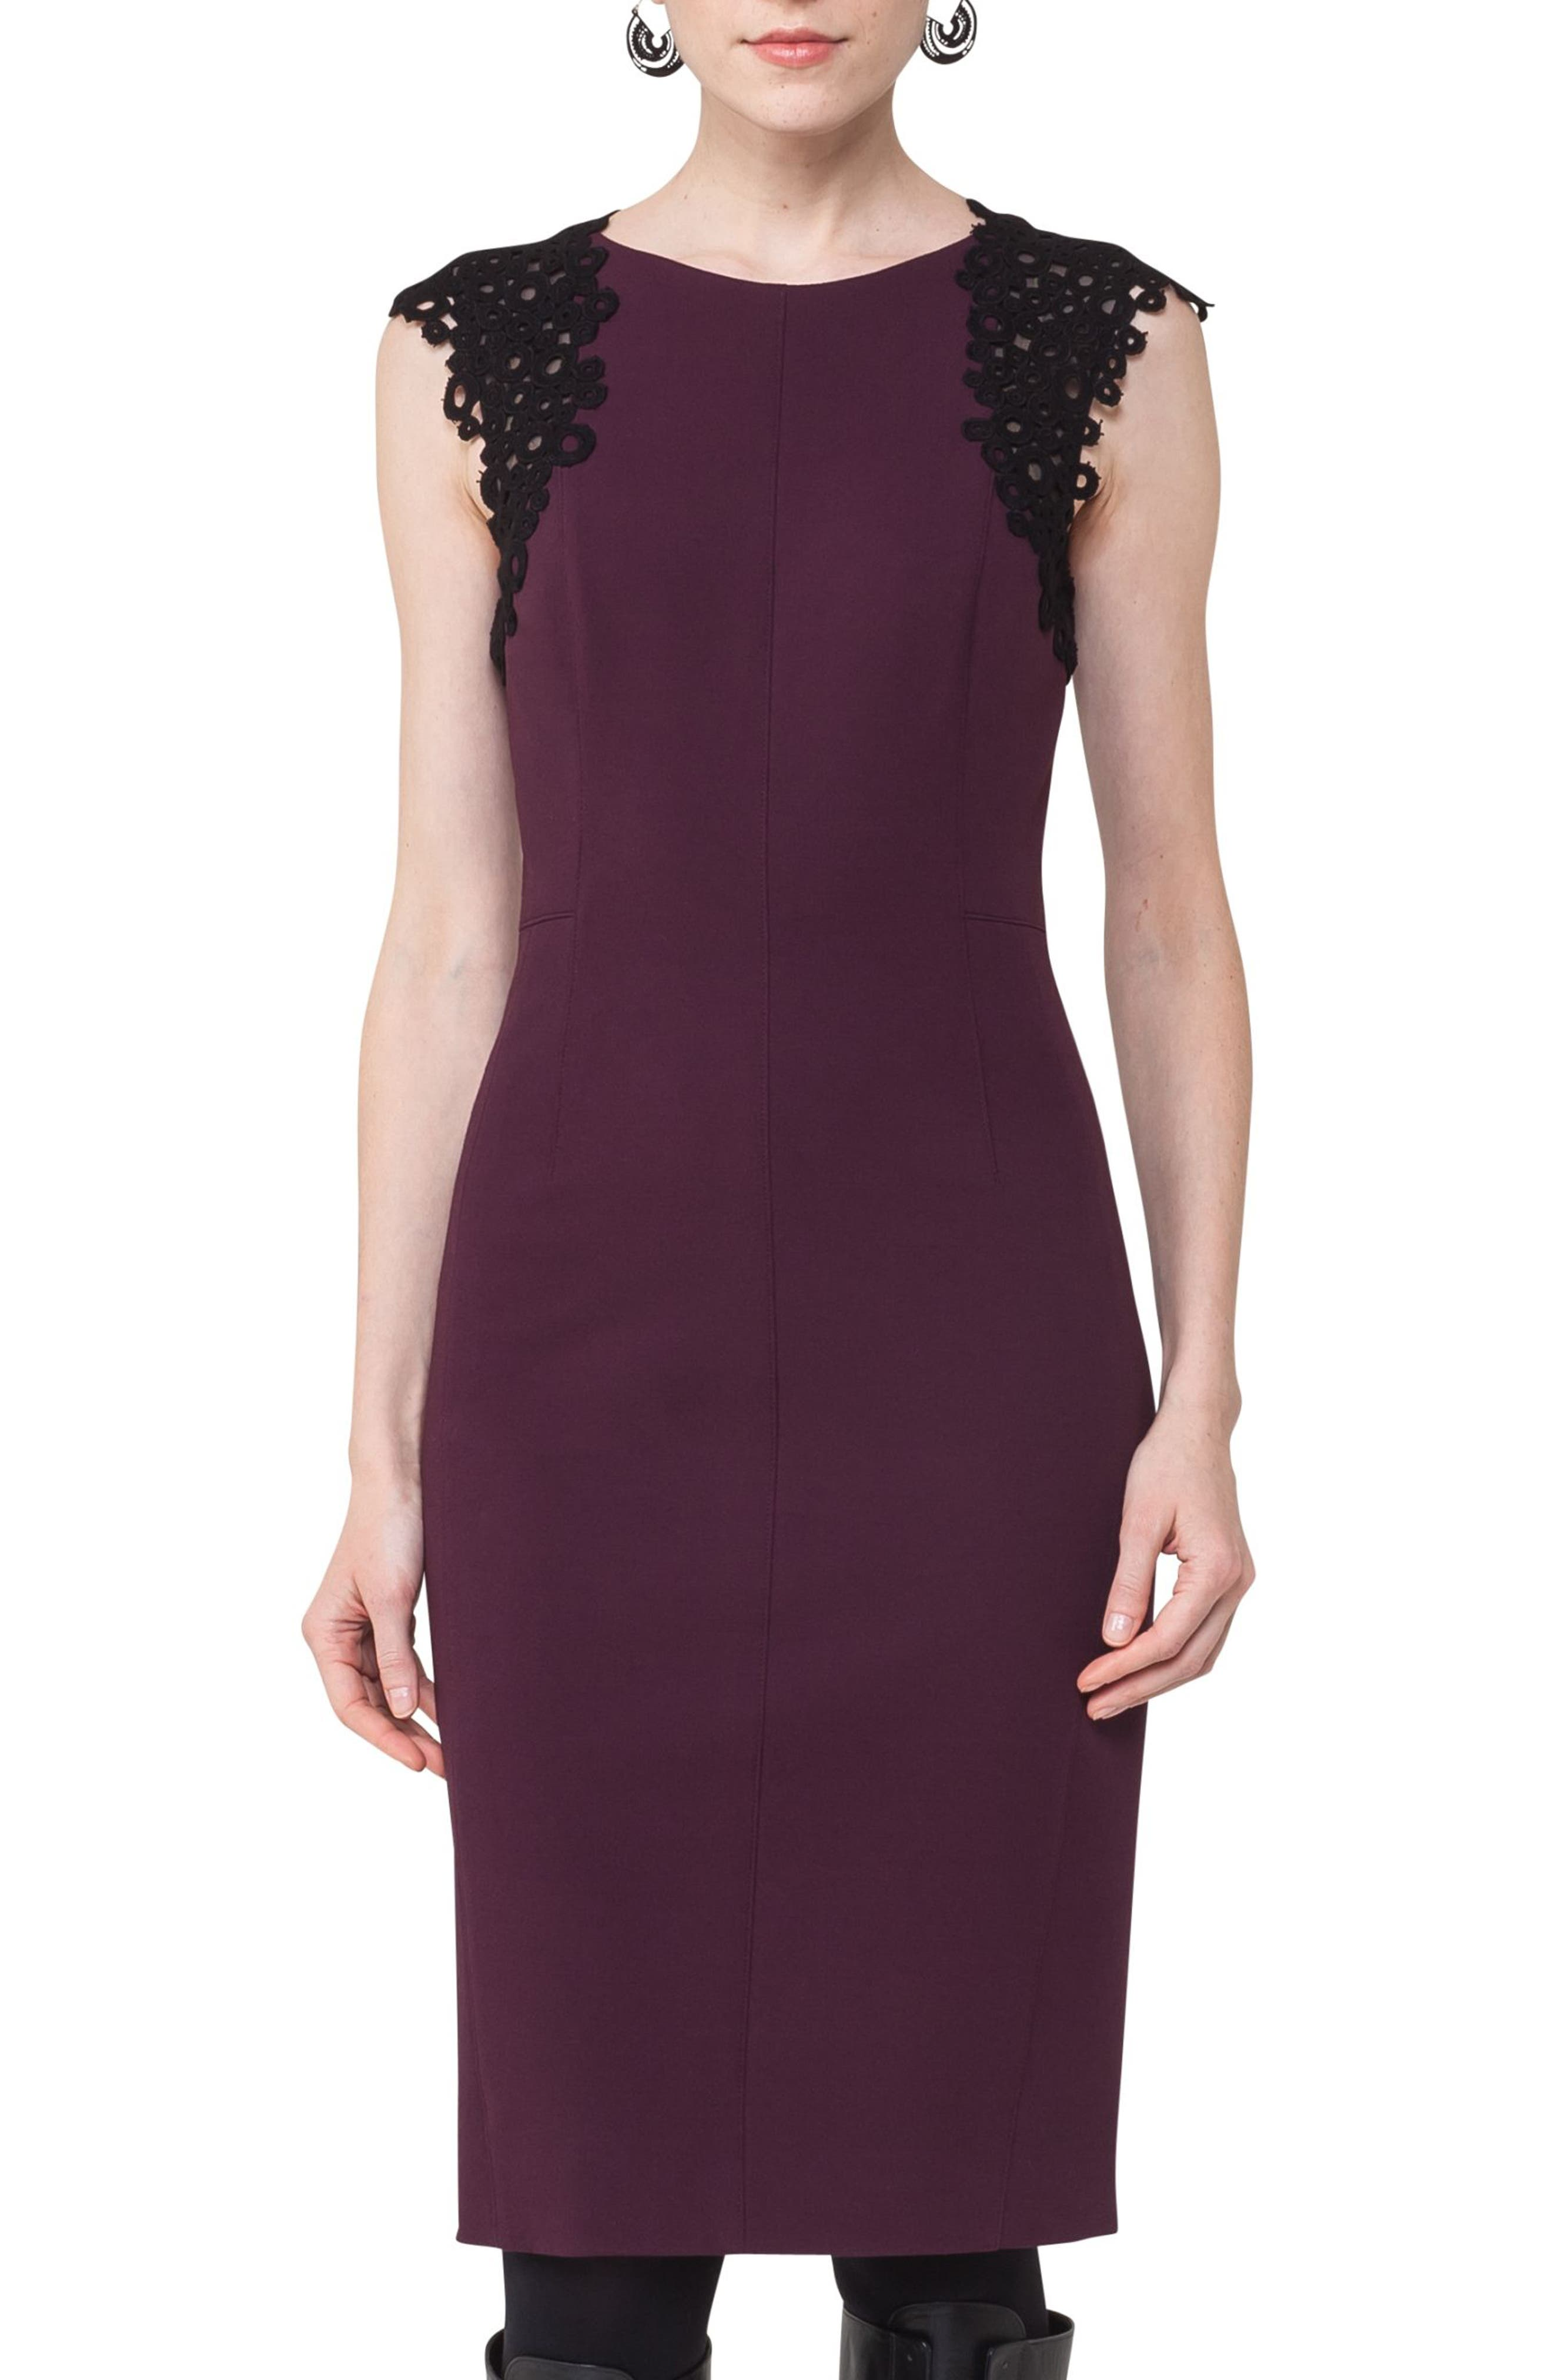 Lace Trim Sheath Dress,                             Alternate thumbnail 4, color,                             Wine